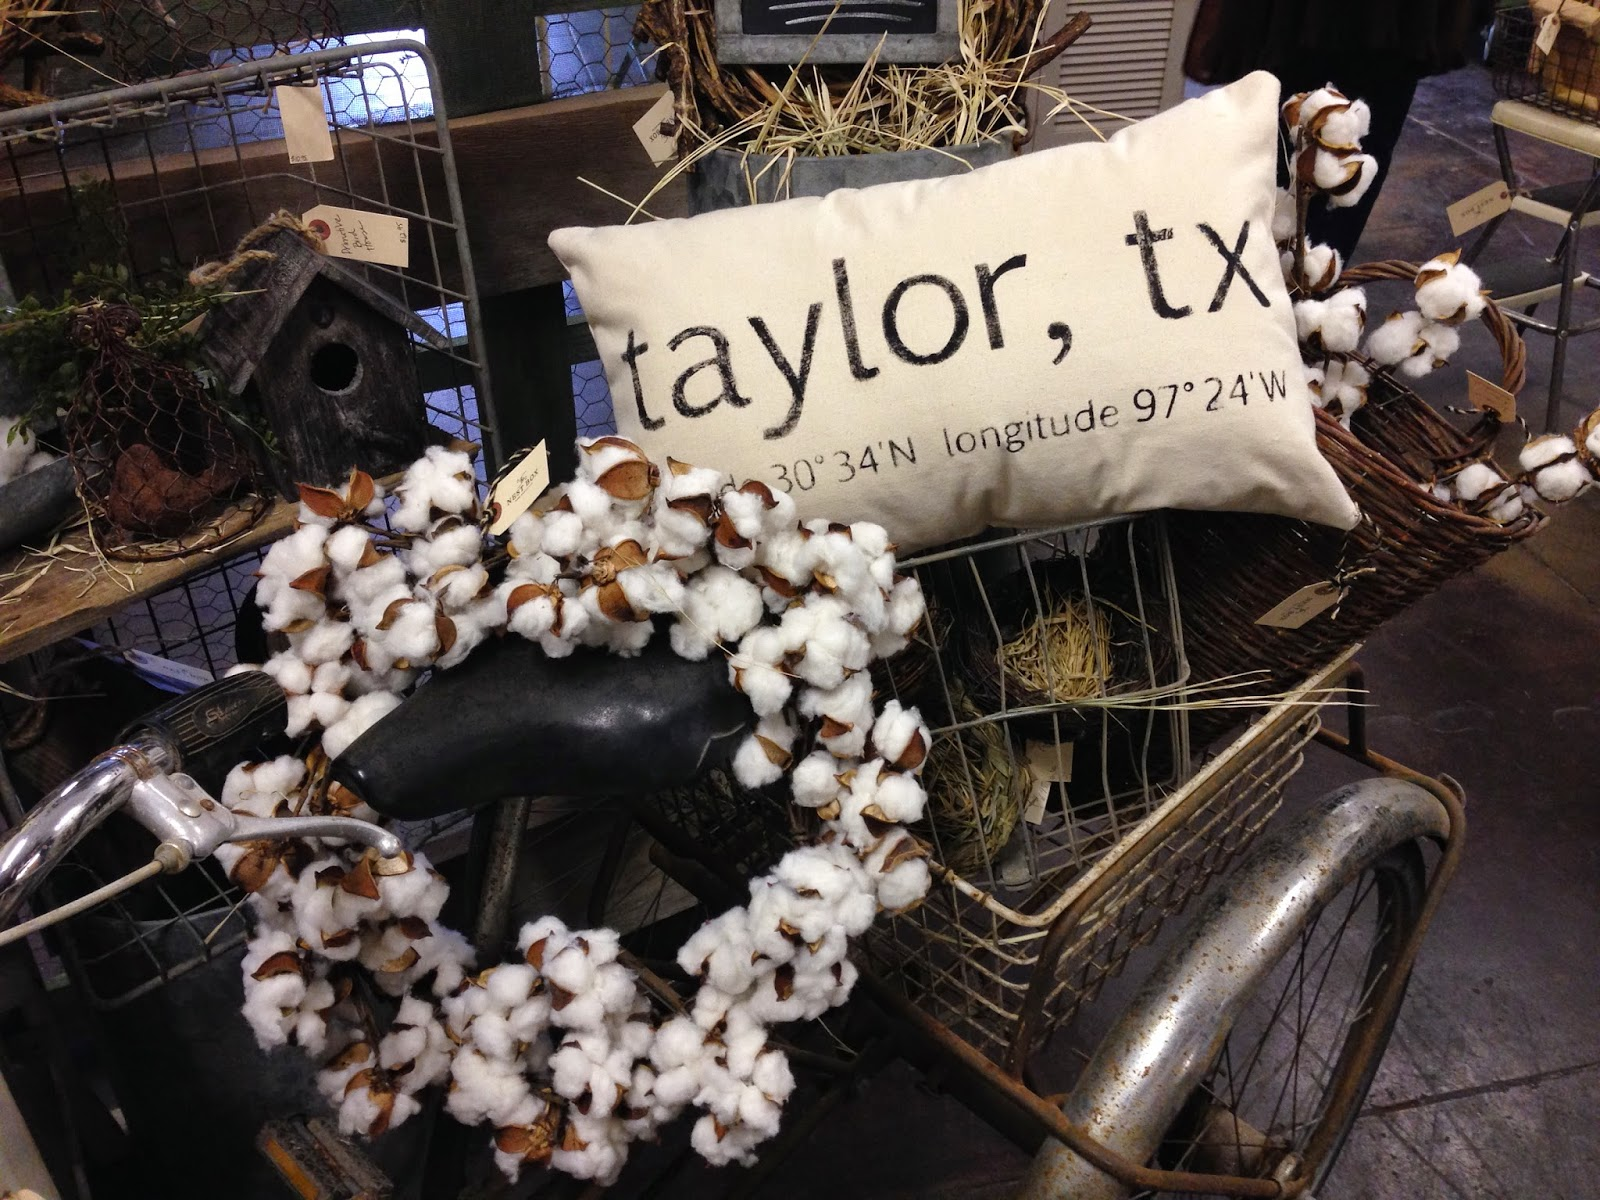 The Nest Box Taylor TX Vintage Finds